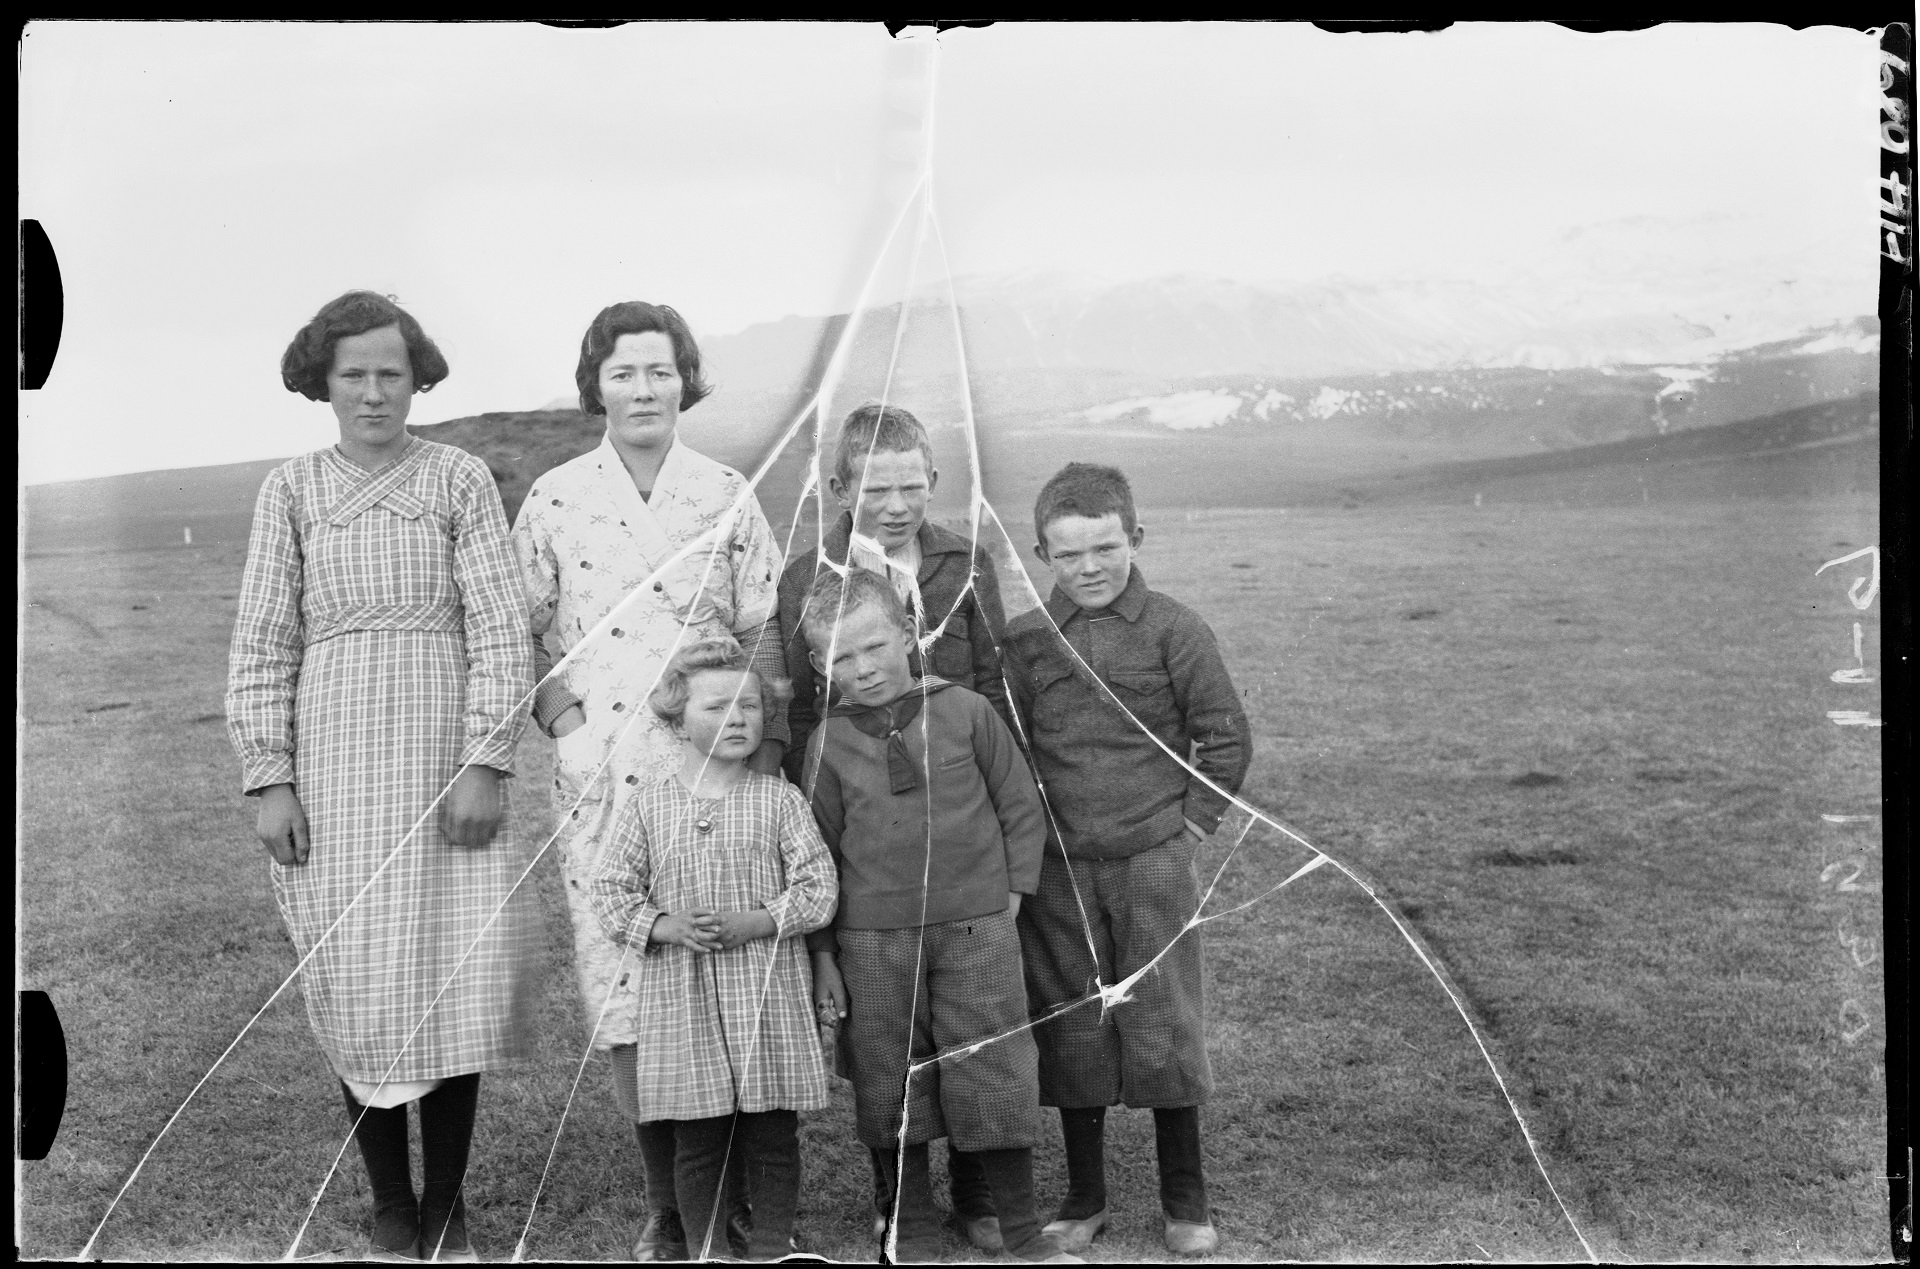 Inhabitants in Öræfi district. Photo: Helgi Arason, 1938.